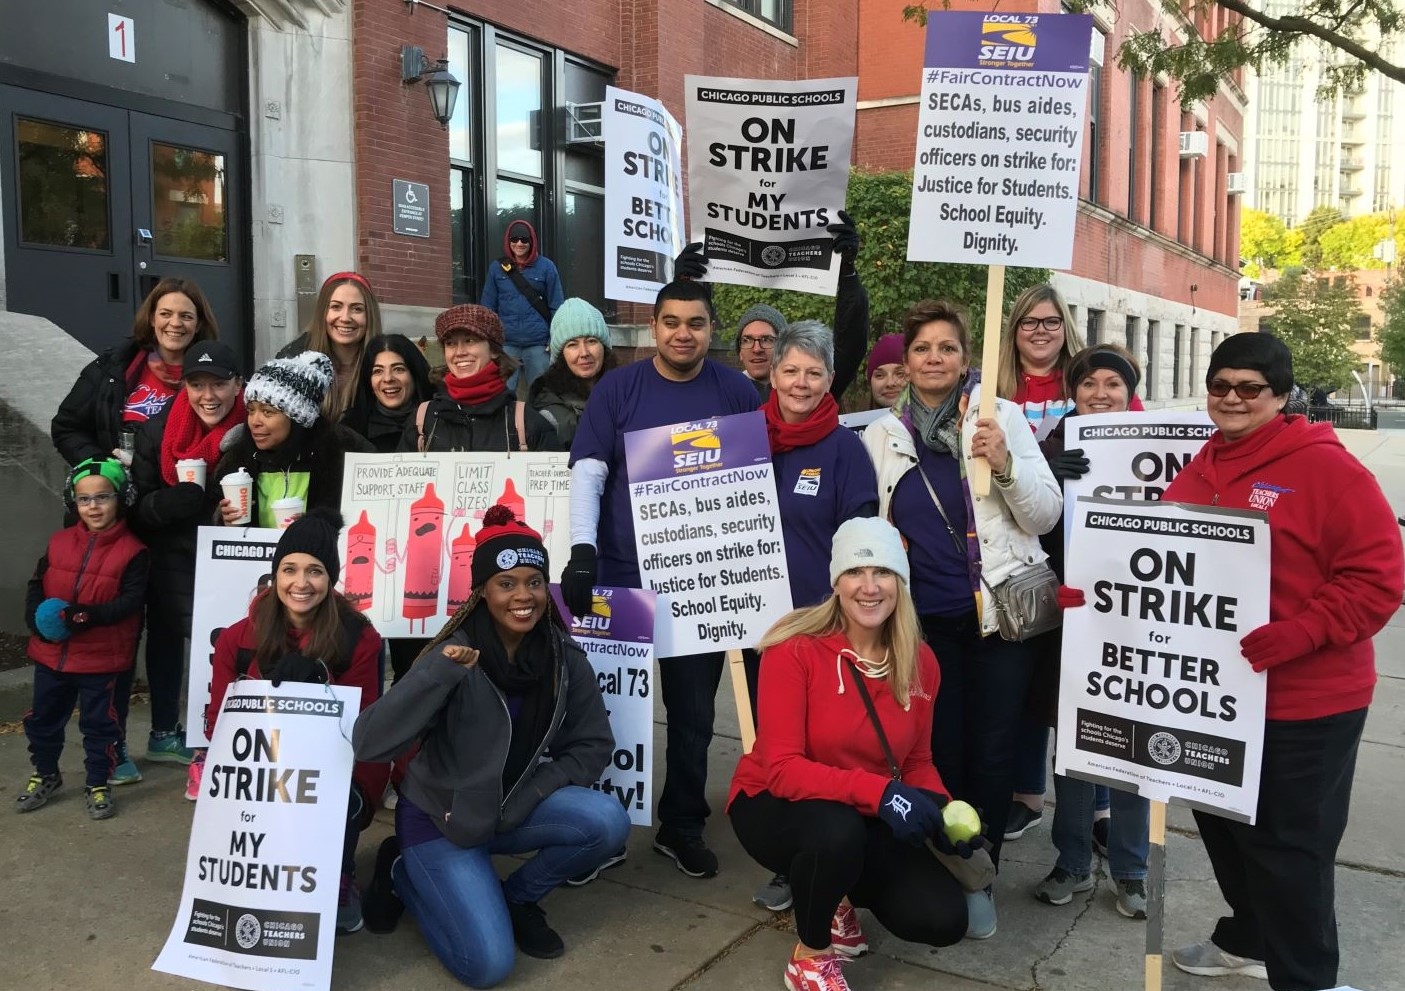 Solidarity: LA School Workers Stand with Chicago Strikers